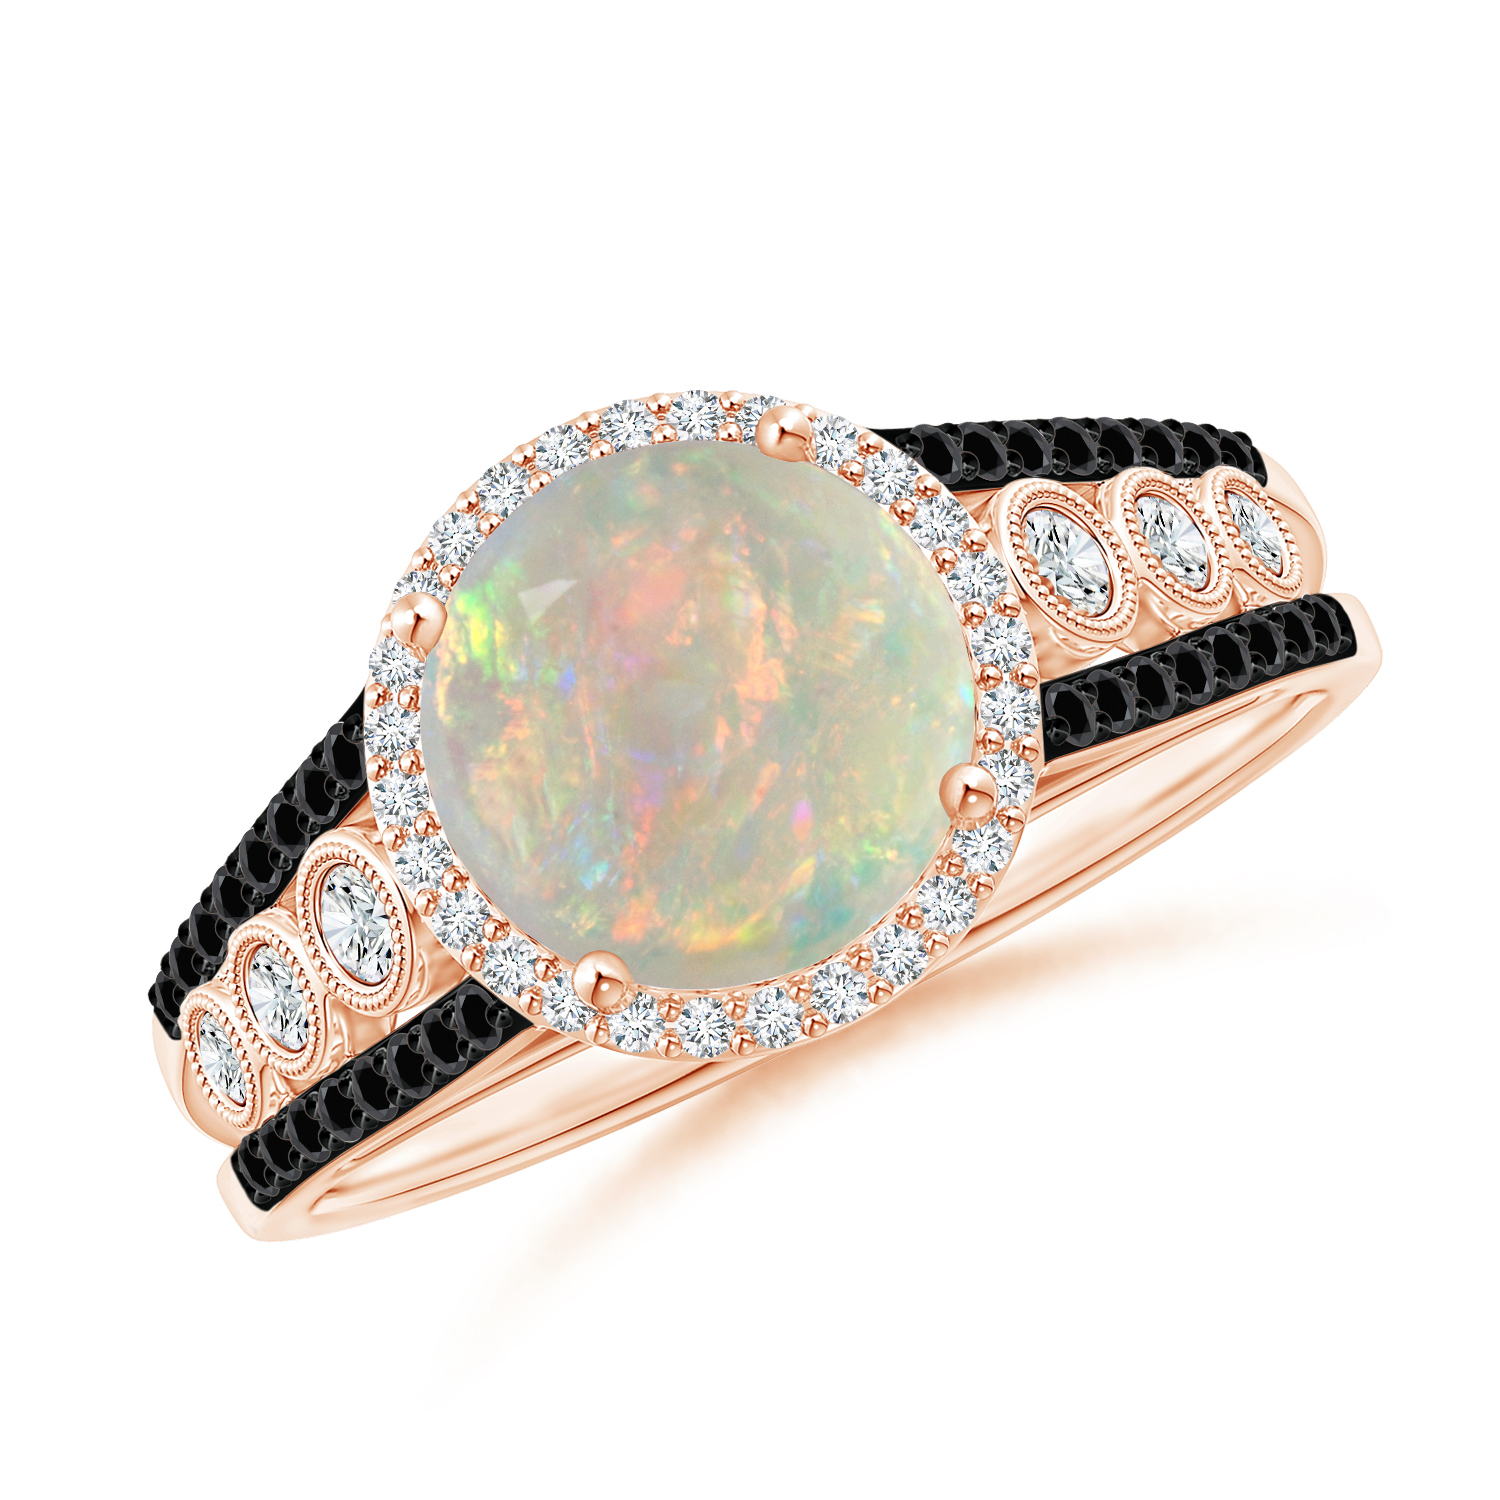 Round Opal Halo Regal Ring with Diamond Accents - Angara.com